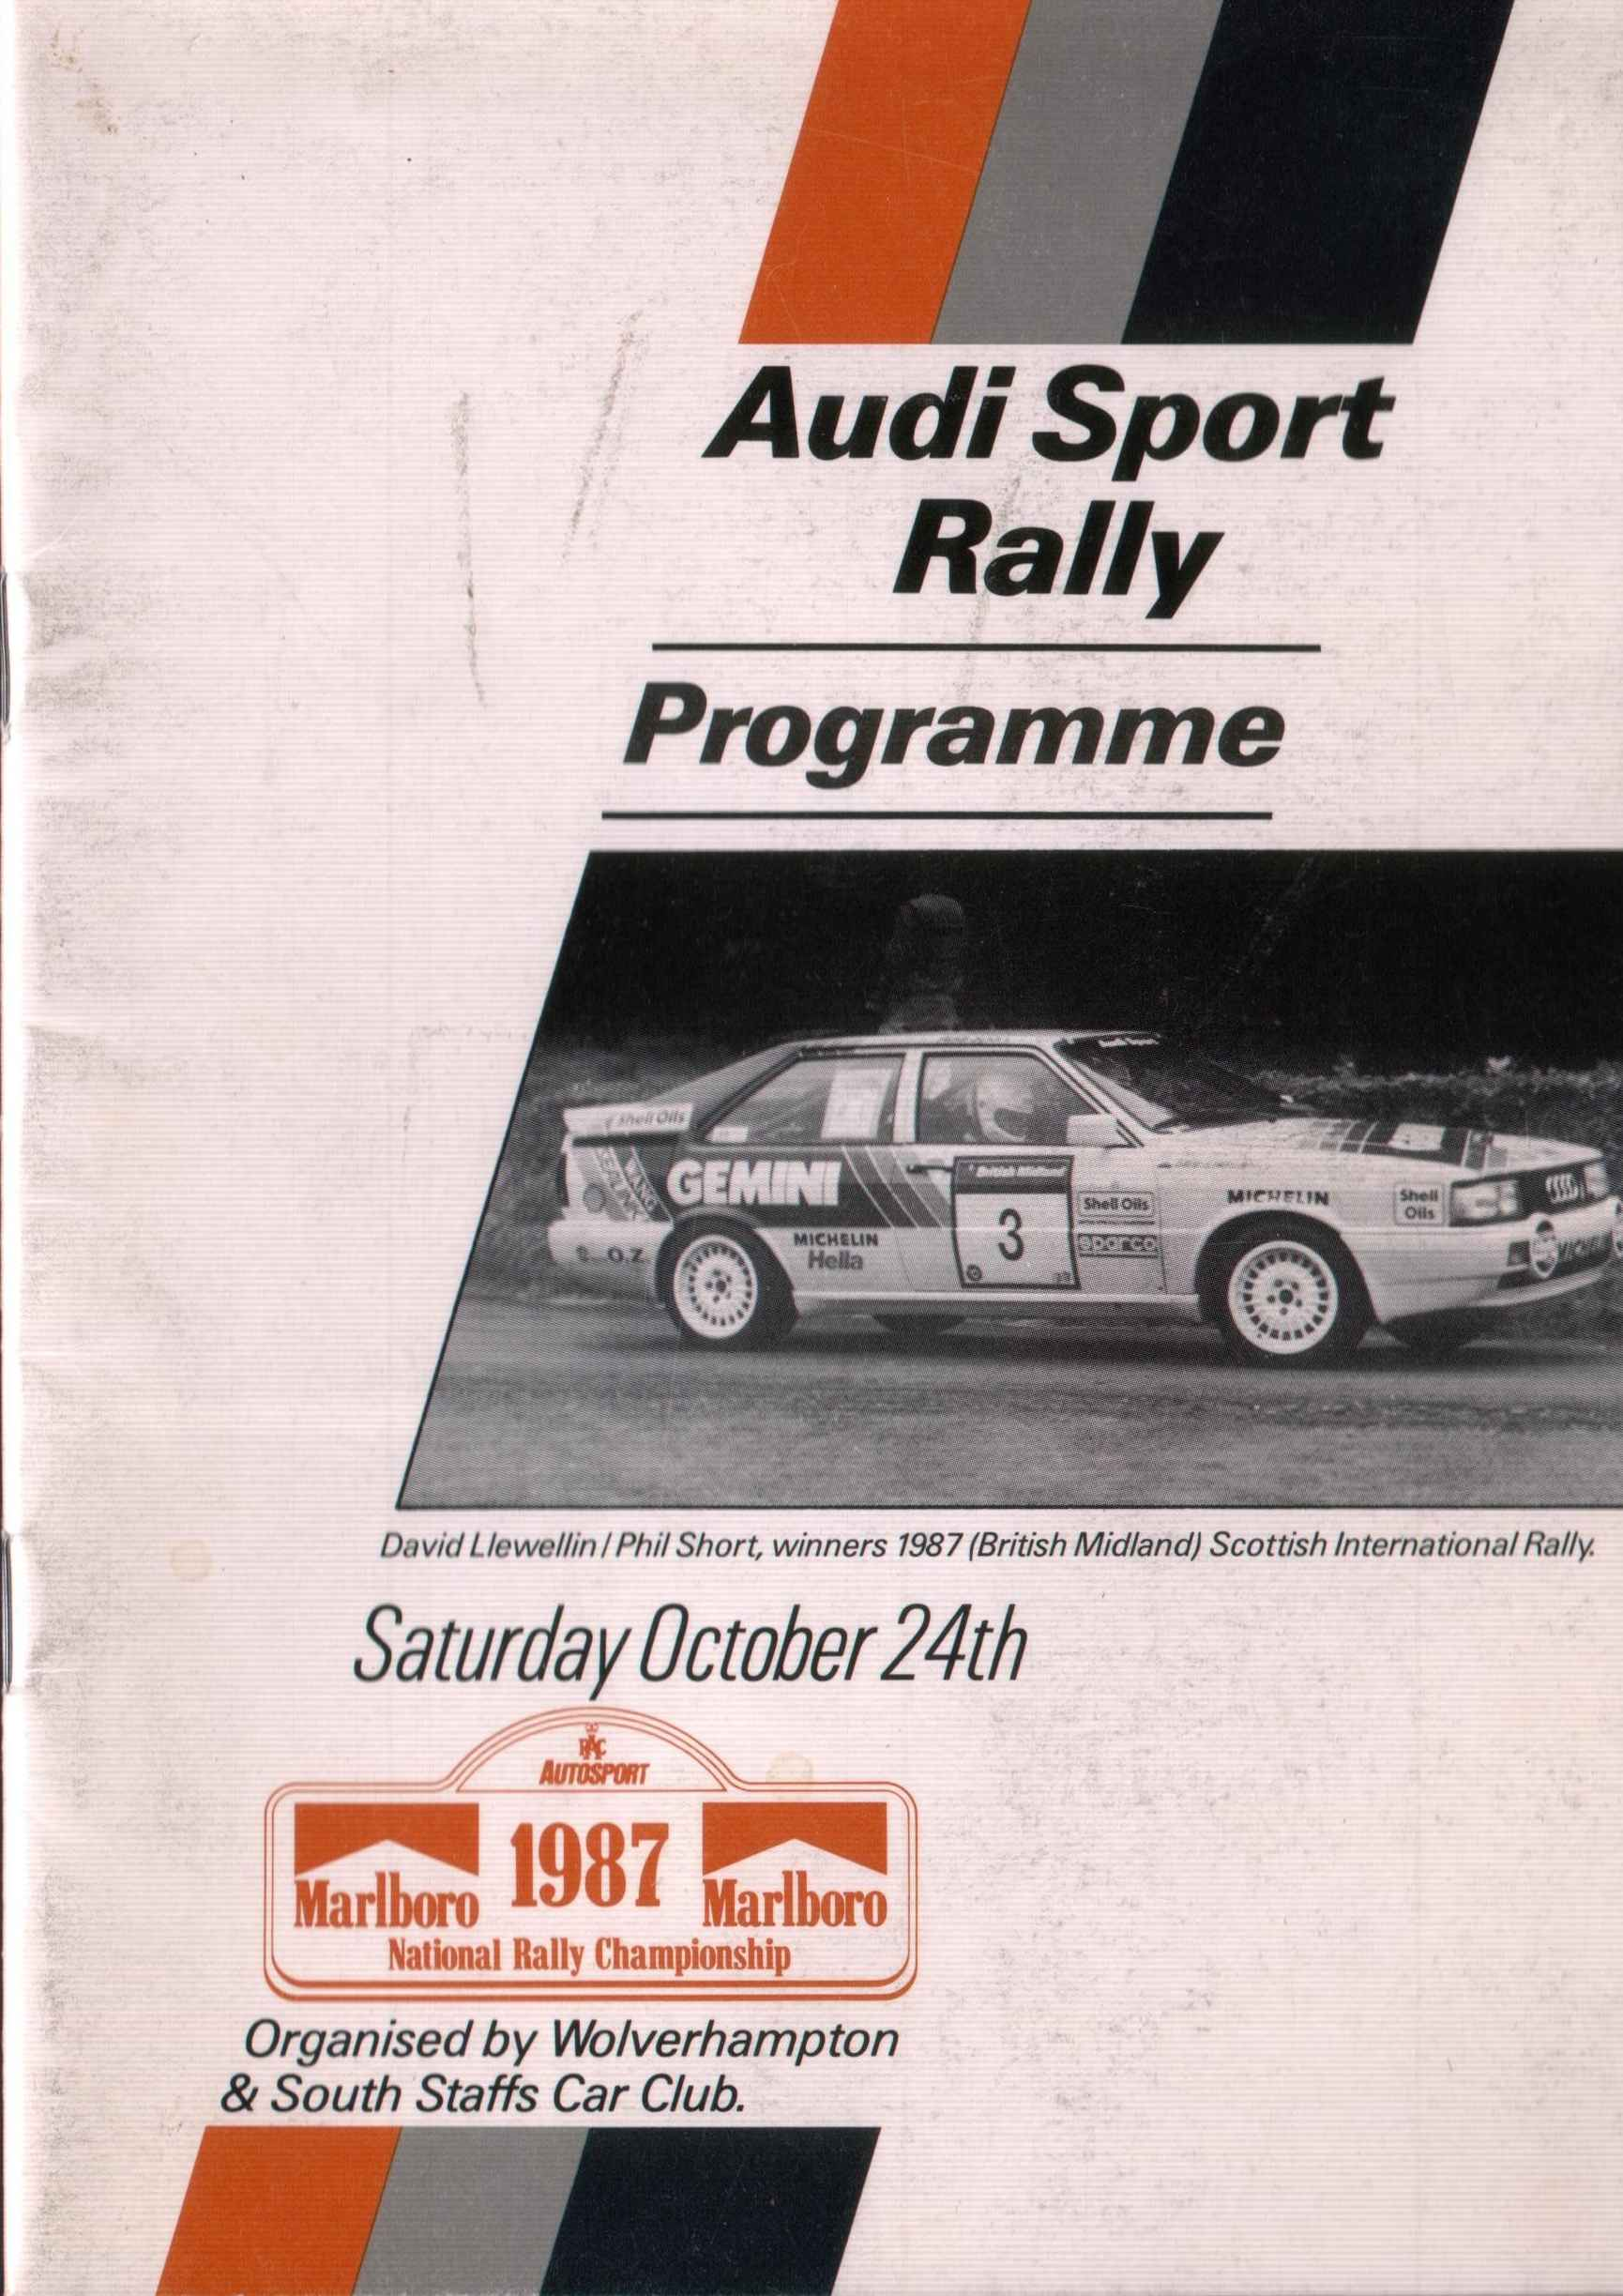 The Cover Page From The Programme Of An Audi Sport Rally